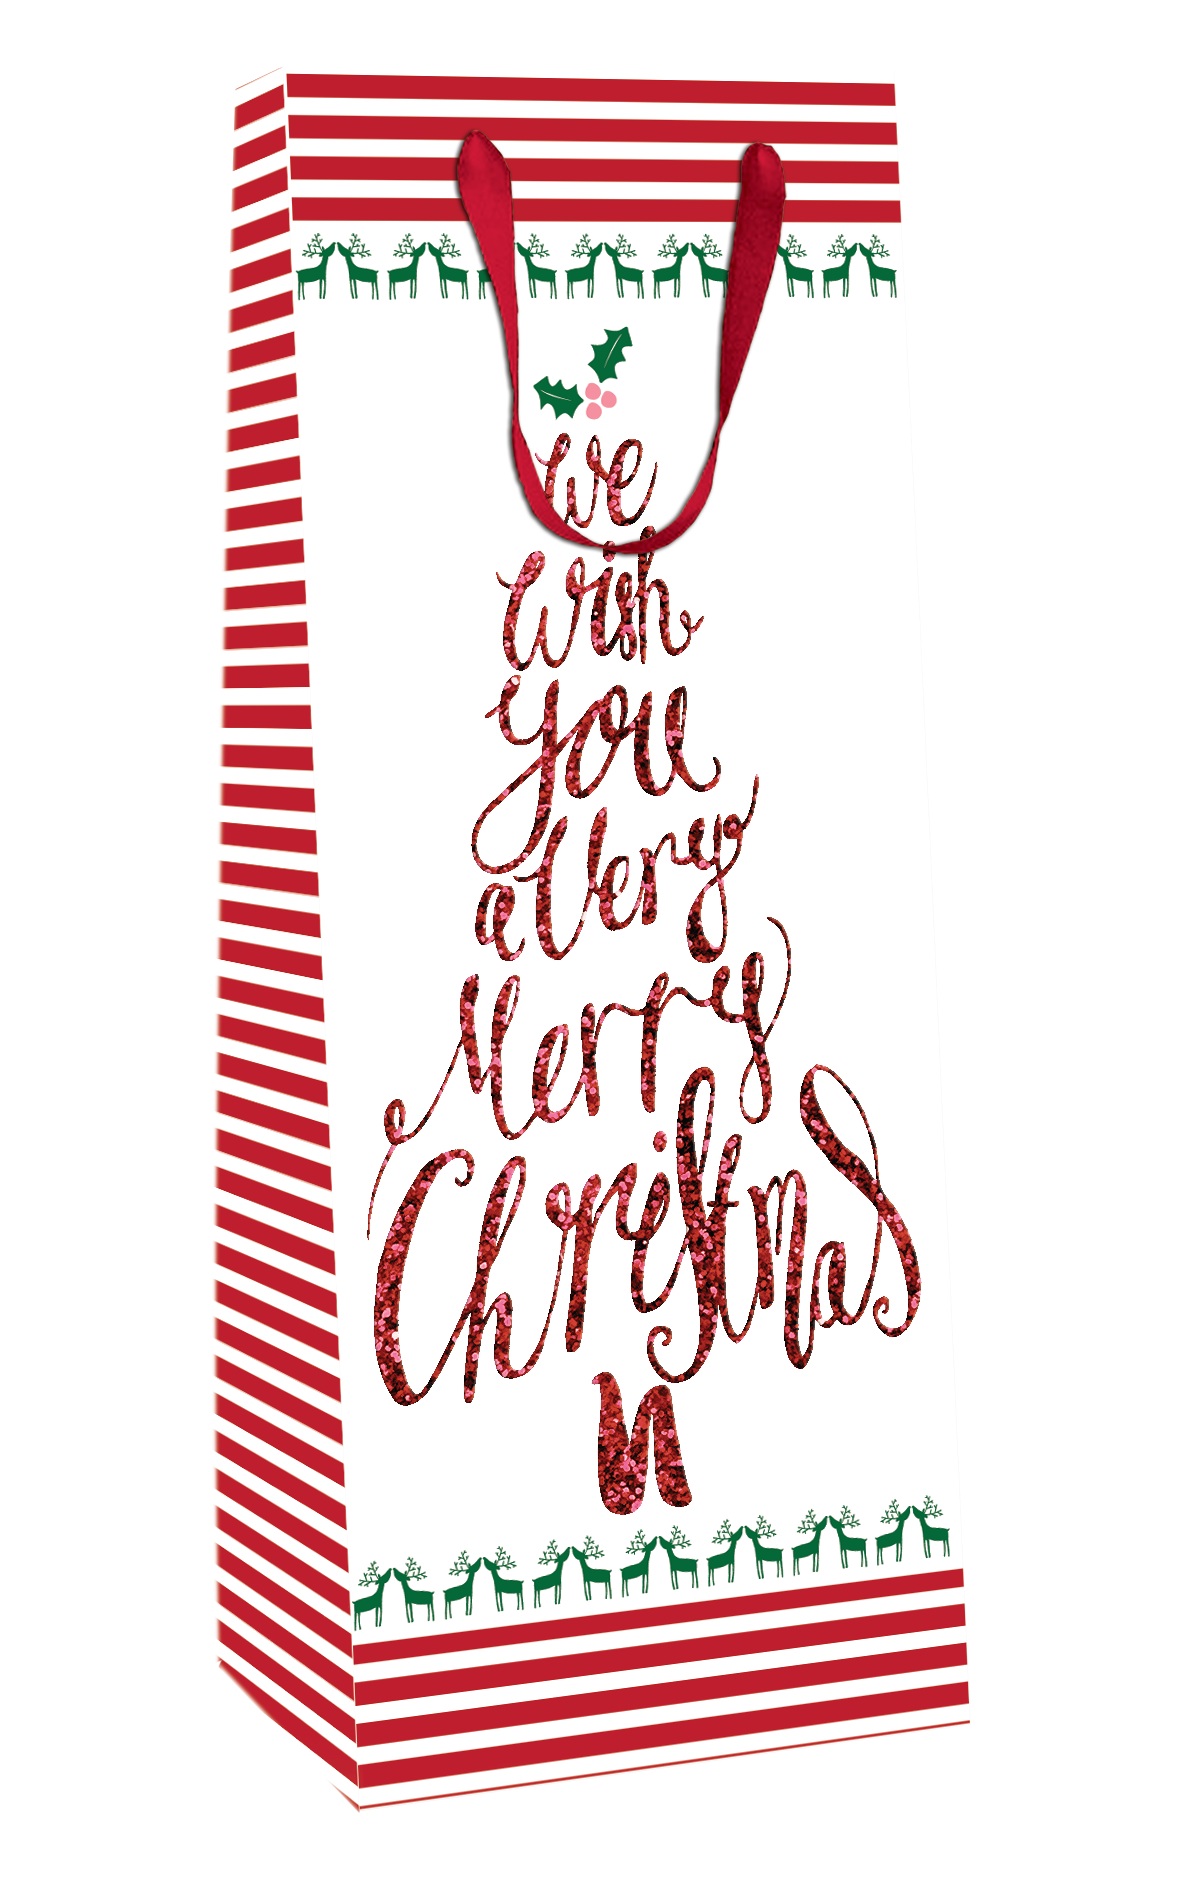 Merry Christmas Gift Tags.We Wish You Merry Christmas Christmas Bottle Bag Christmas Gift Bag With Tag